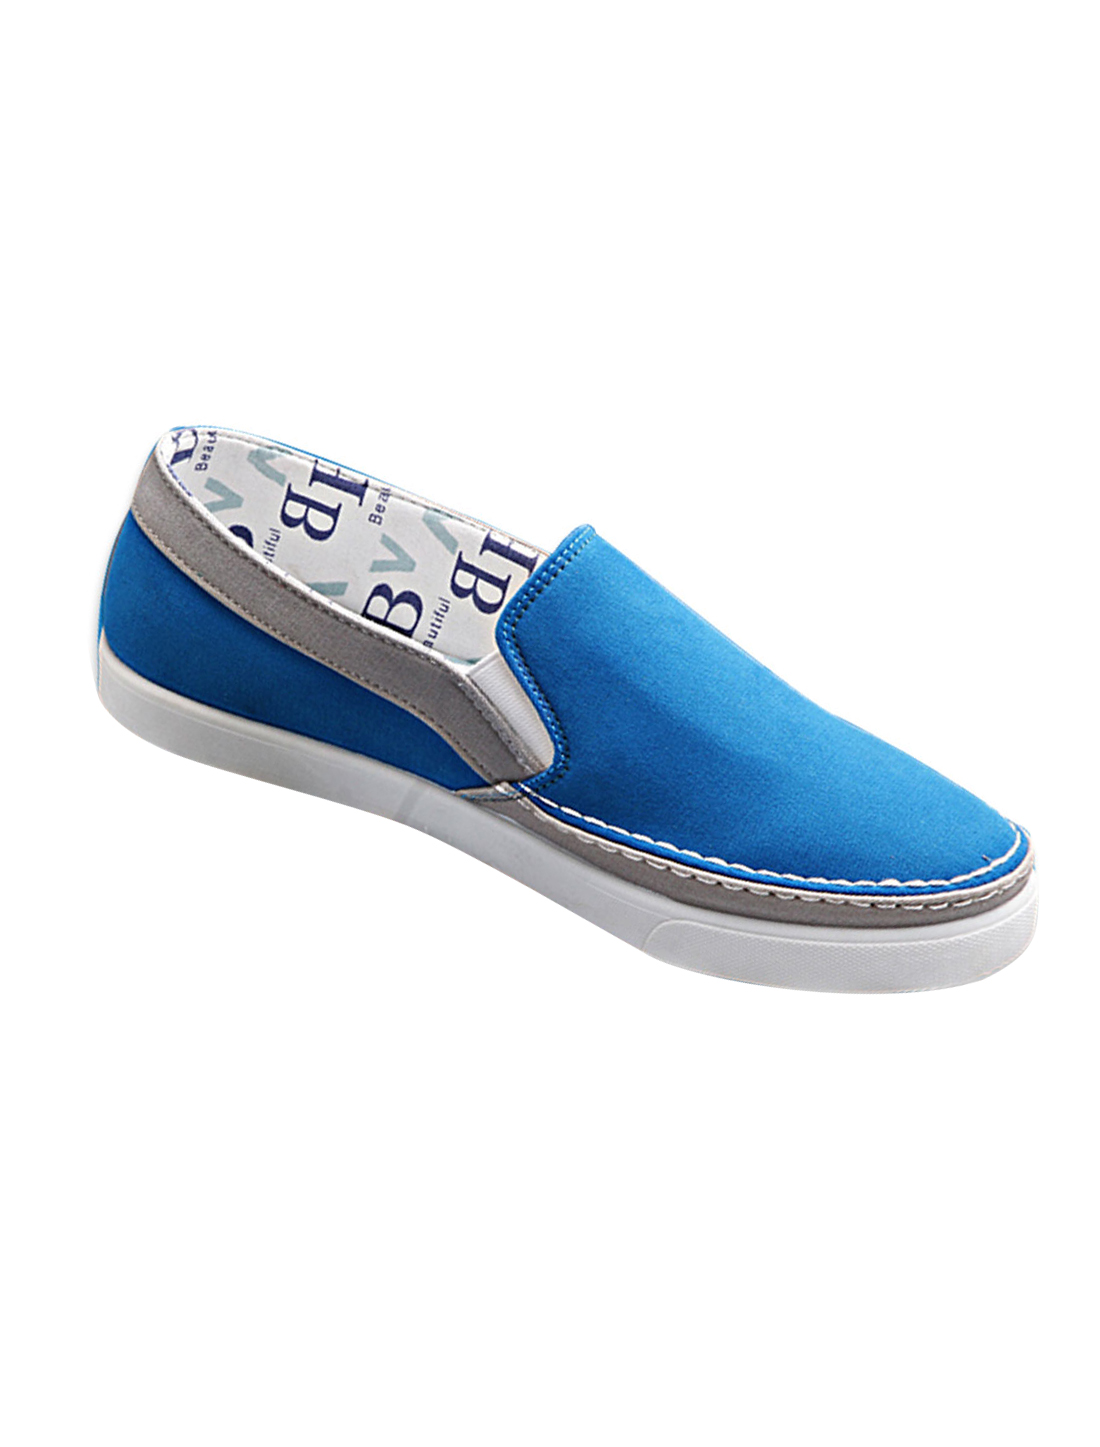 Men Summer Cool Letter Pattern Lining Slip On Shoes US Size 11 Blue